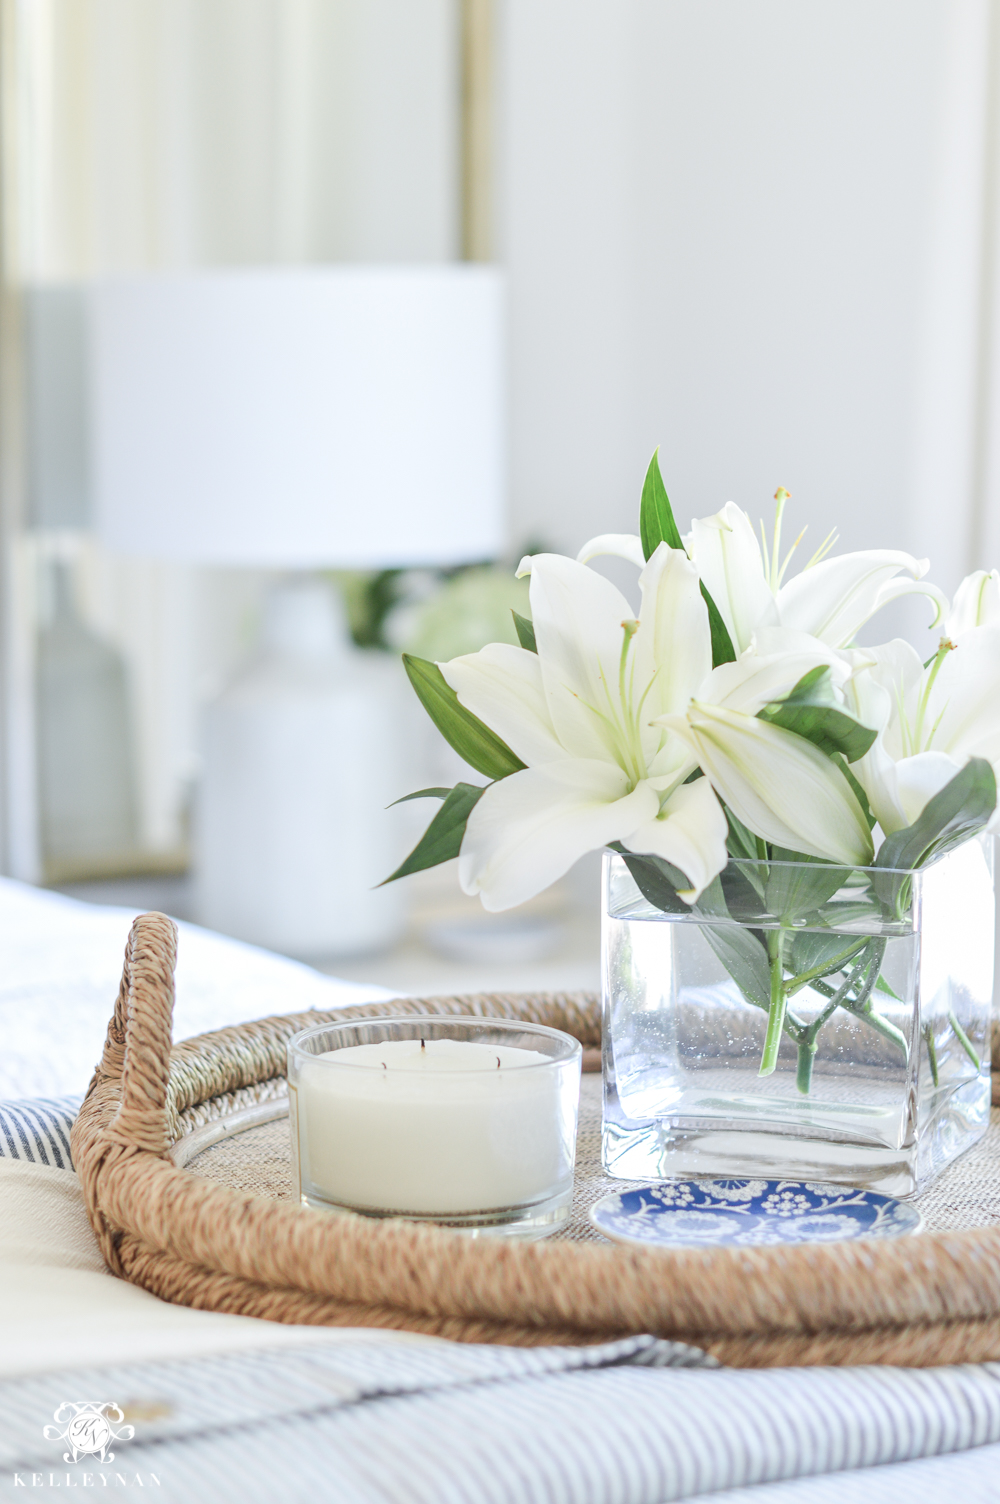 One Room Challenge Blue and White Guest Bedroom Reveal Before and After Makeover- bed tray styling